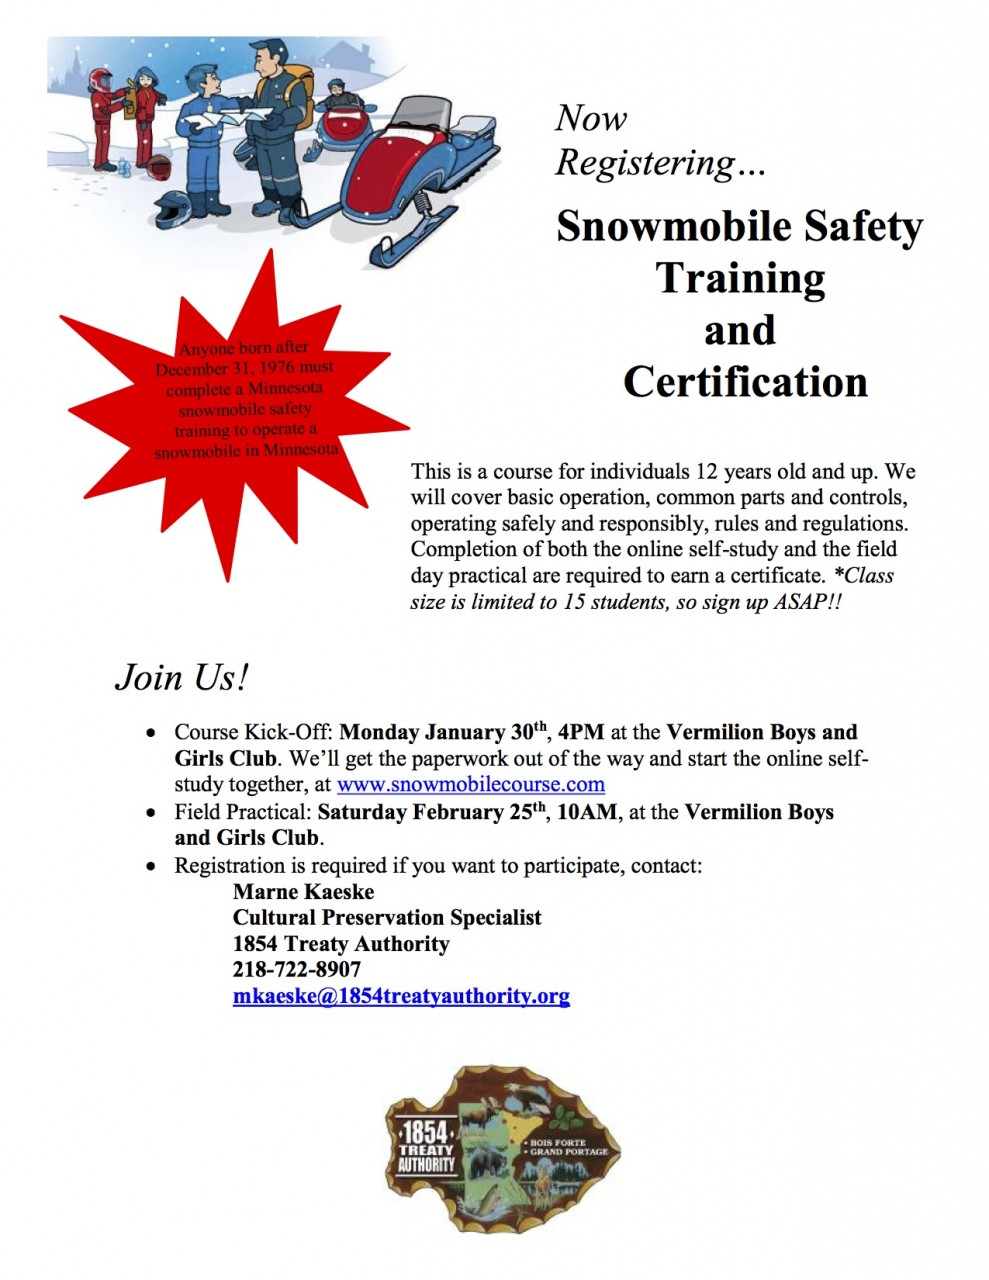 Snowmobile Safety Certification Course